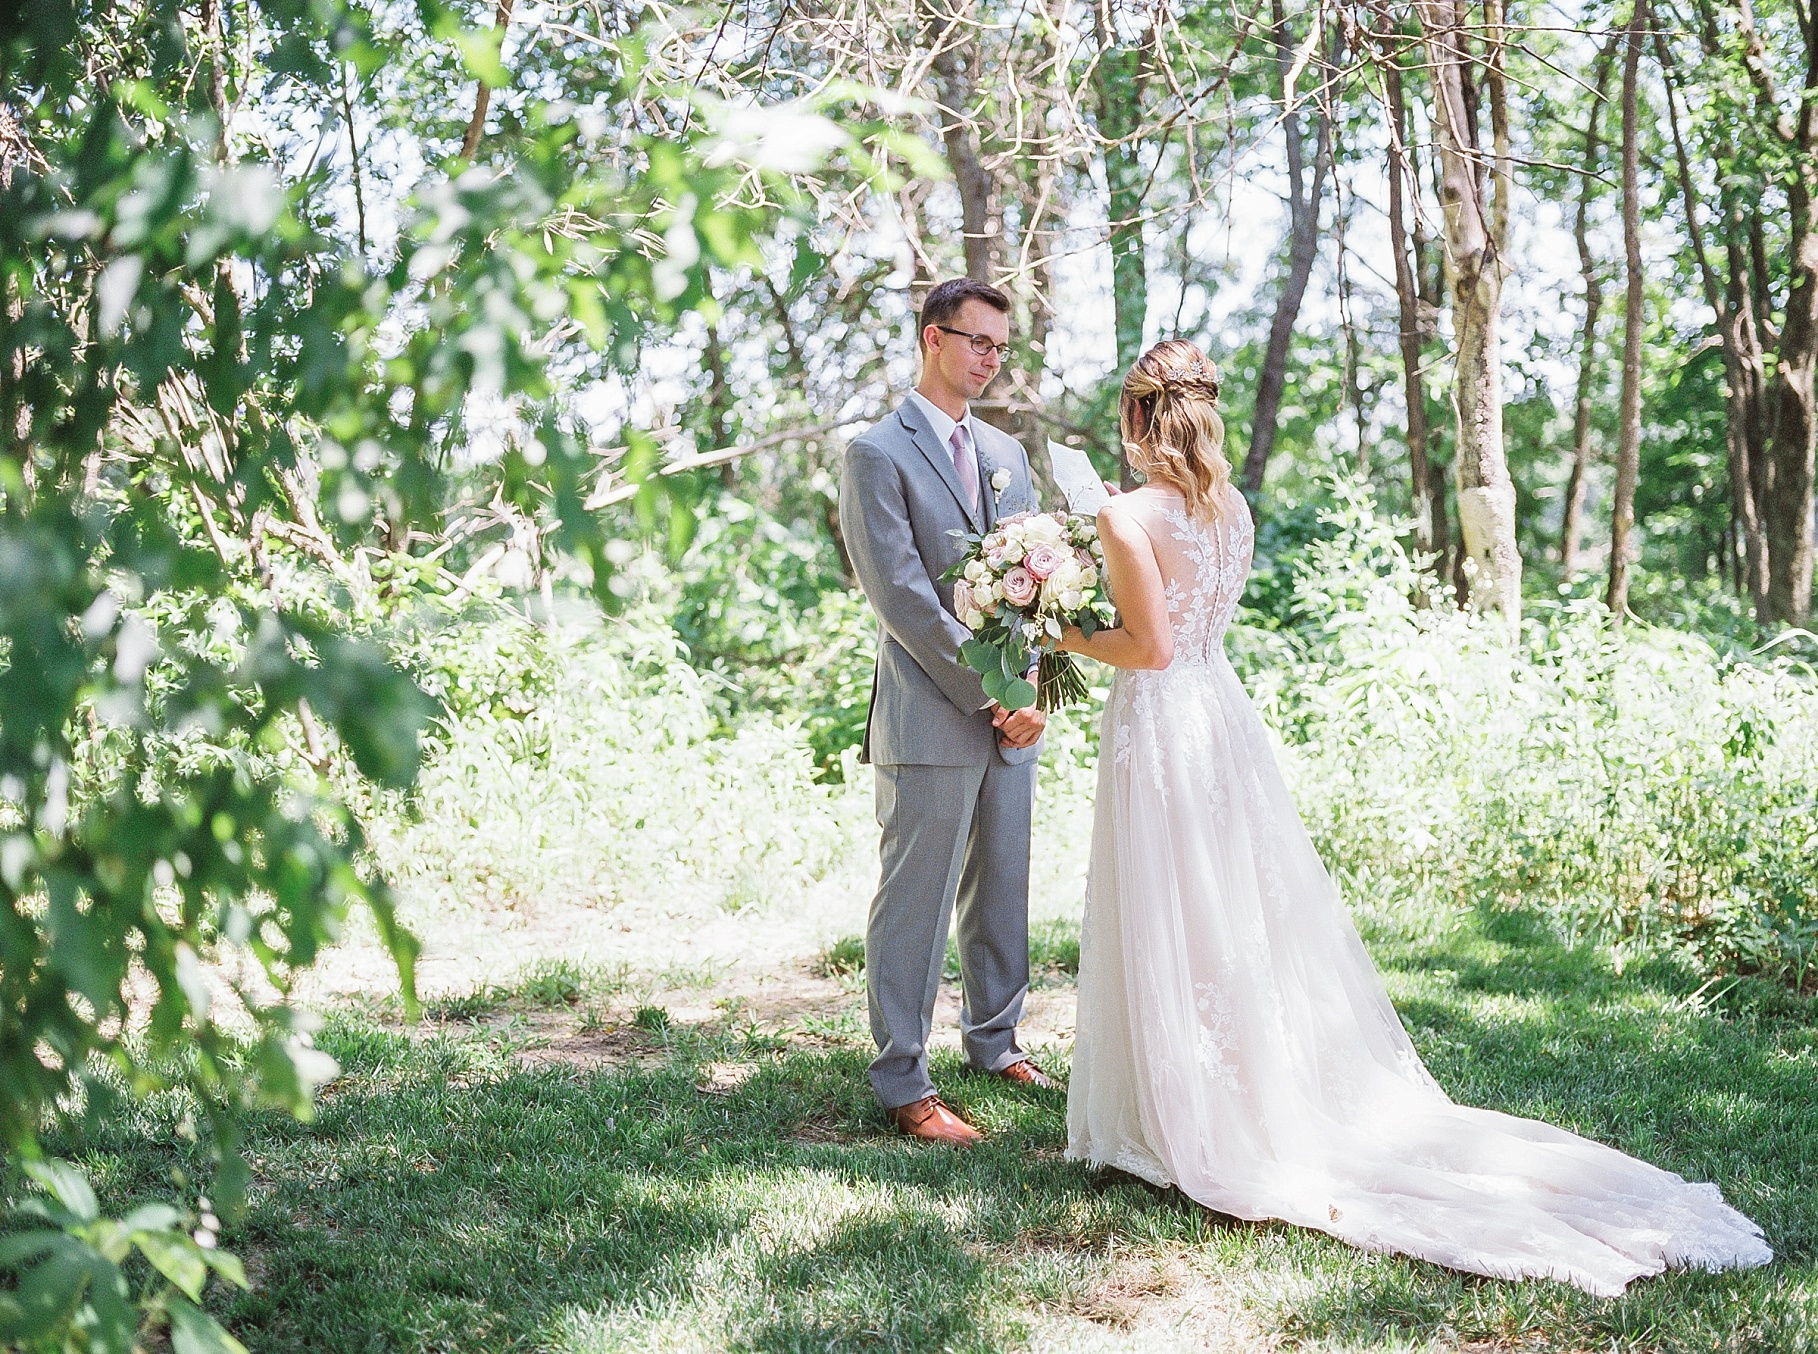 Classic Quartz, White, and Deep Green Wedding at Emerson Fields by Kelsi Kliethermes Photography Best Columbia Missouri and Maui Hawaii Wedding Photographer_0029.jpg